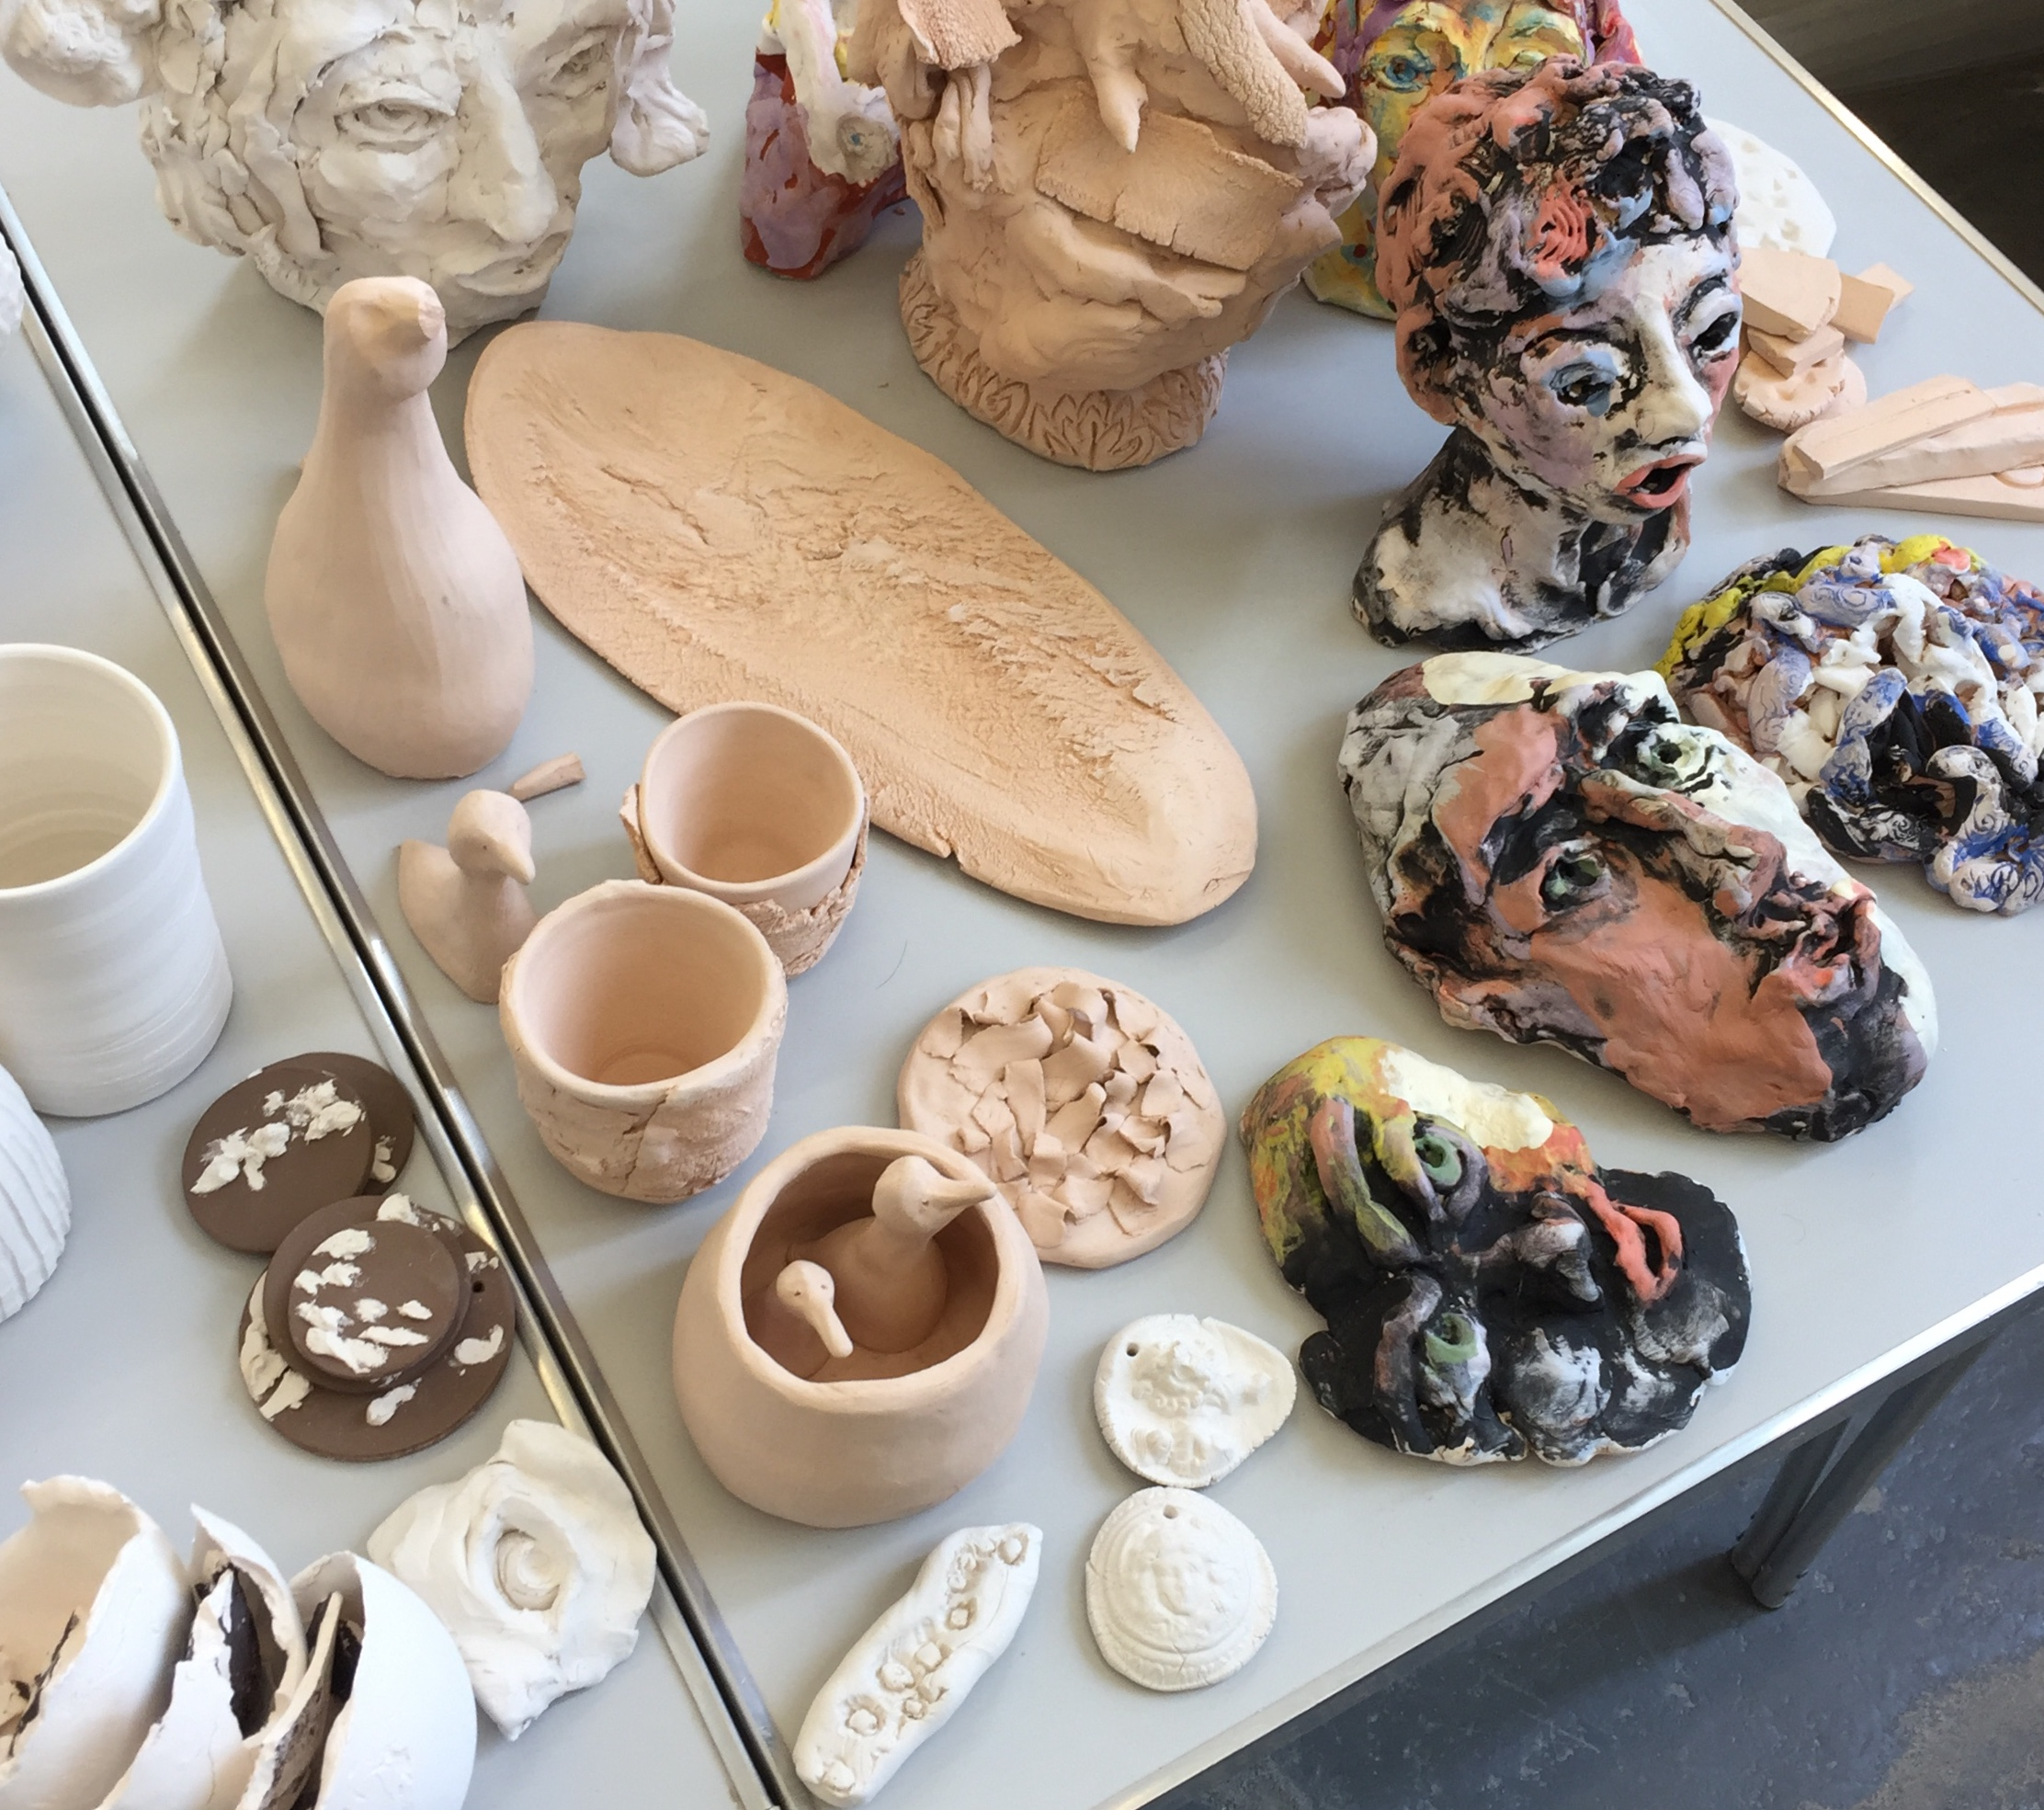 Ceramics for All! Feb/Mar 2020 (Wed afternoon)